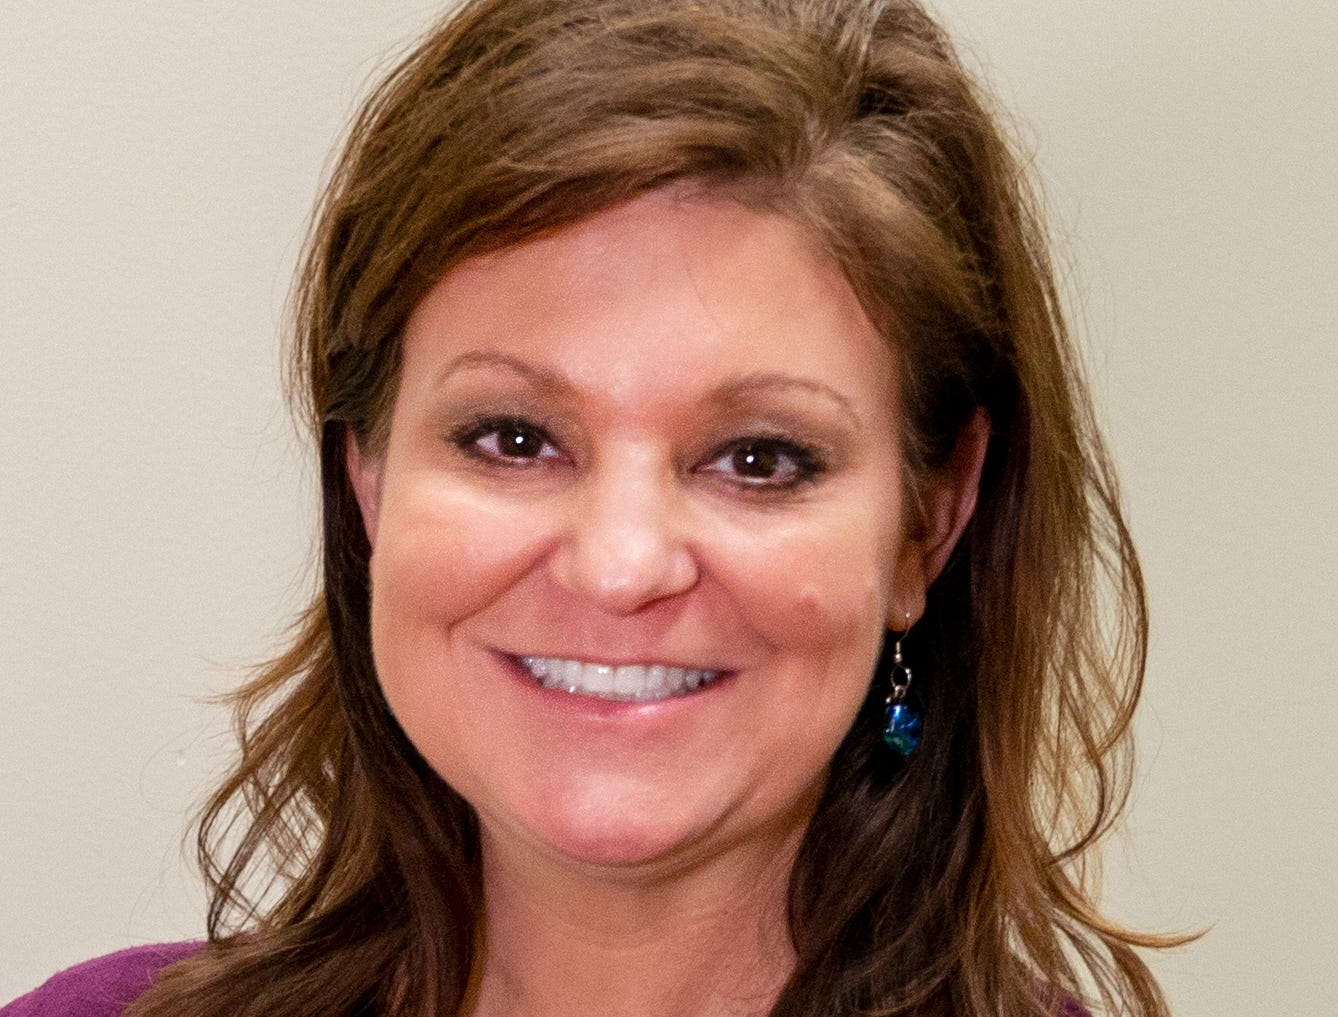 The Tranzonic Companies recently hired Linda Miller as vice president of human resources for its locations across the country. The company has a manufacturing facility in West Knoxville.